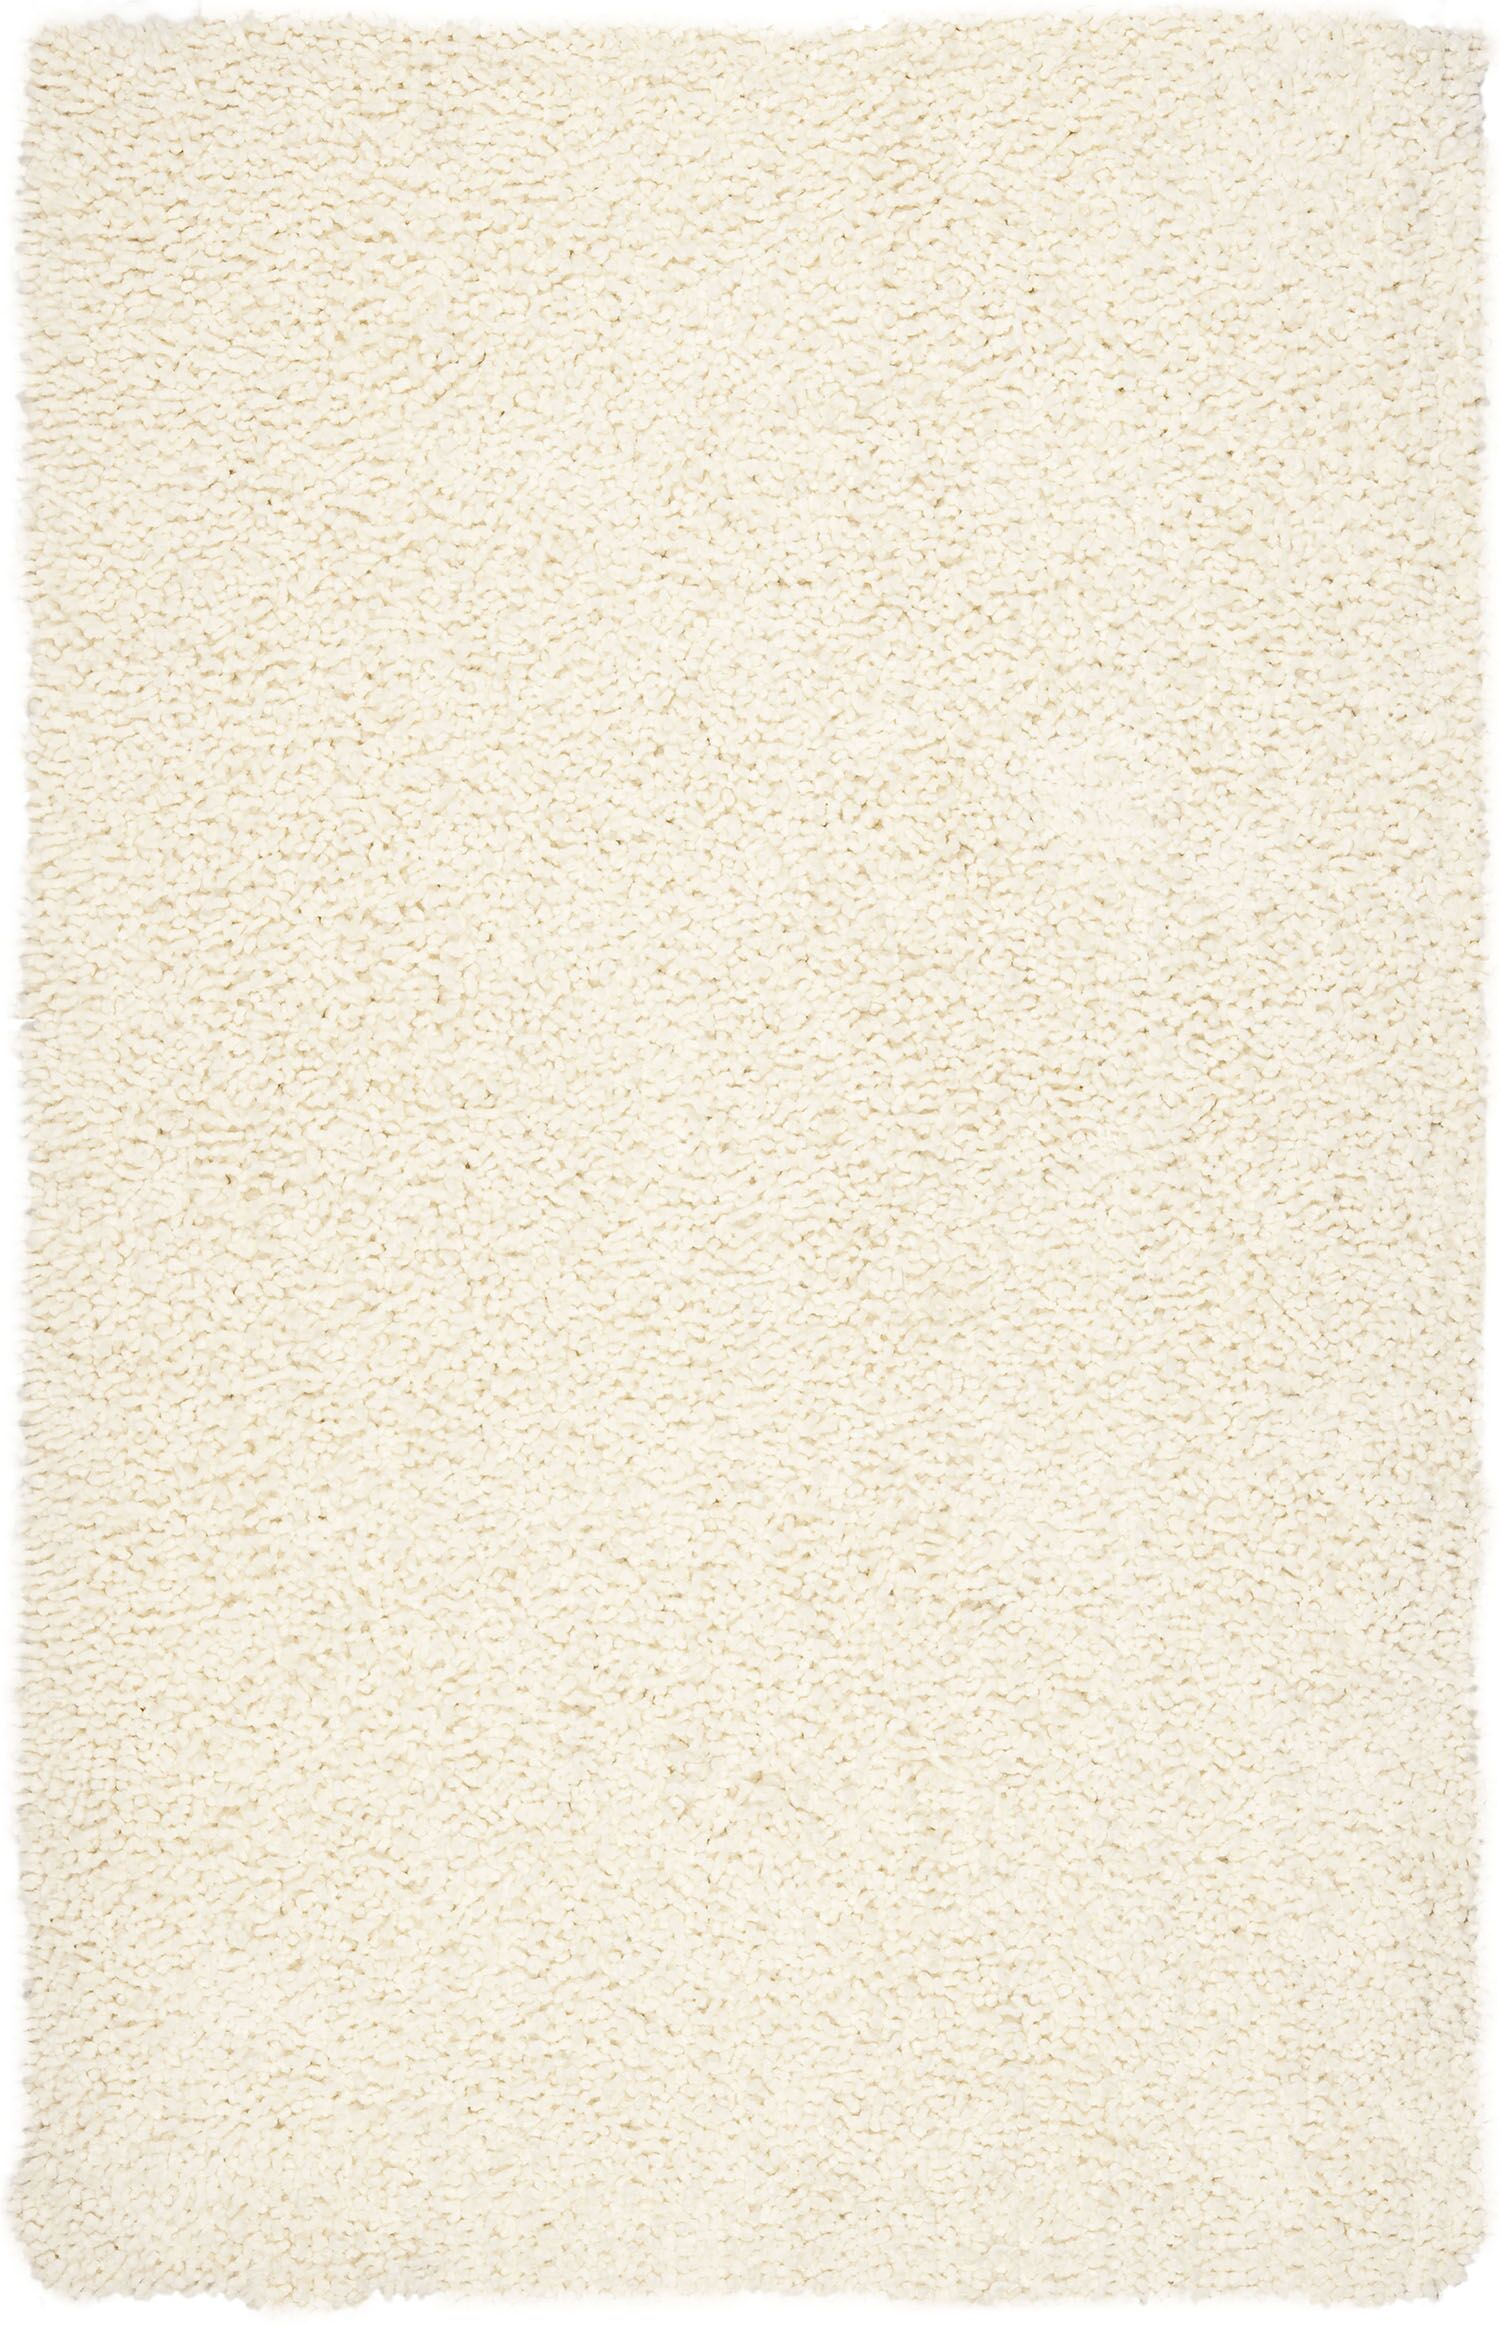 Carrabelle Ivory Area Rug Rug Size: Rectangle 5' x 8'